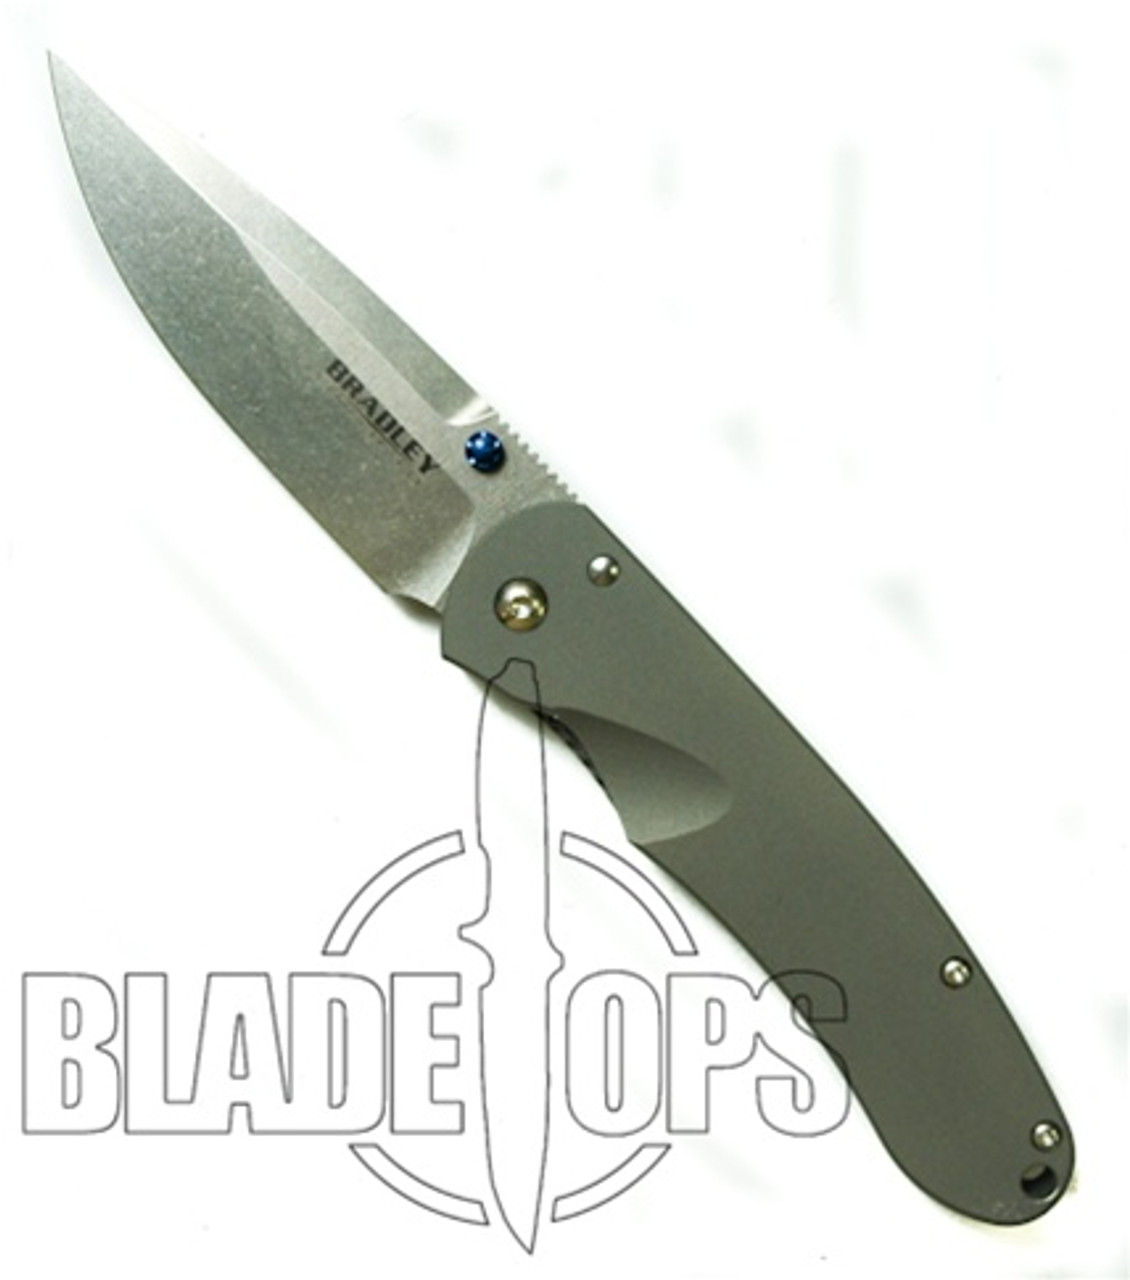 Bradley Cutlery Alias 1, Titanium Plain Edge Manual Folding Knife, S30V